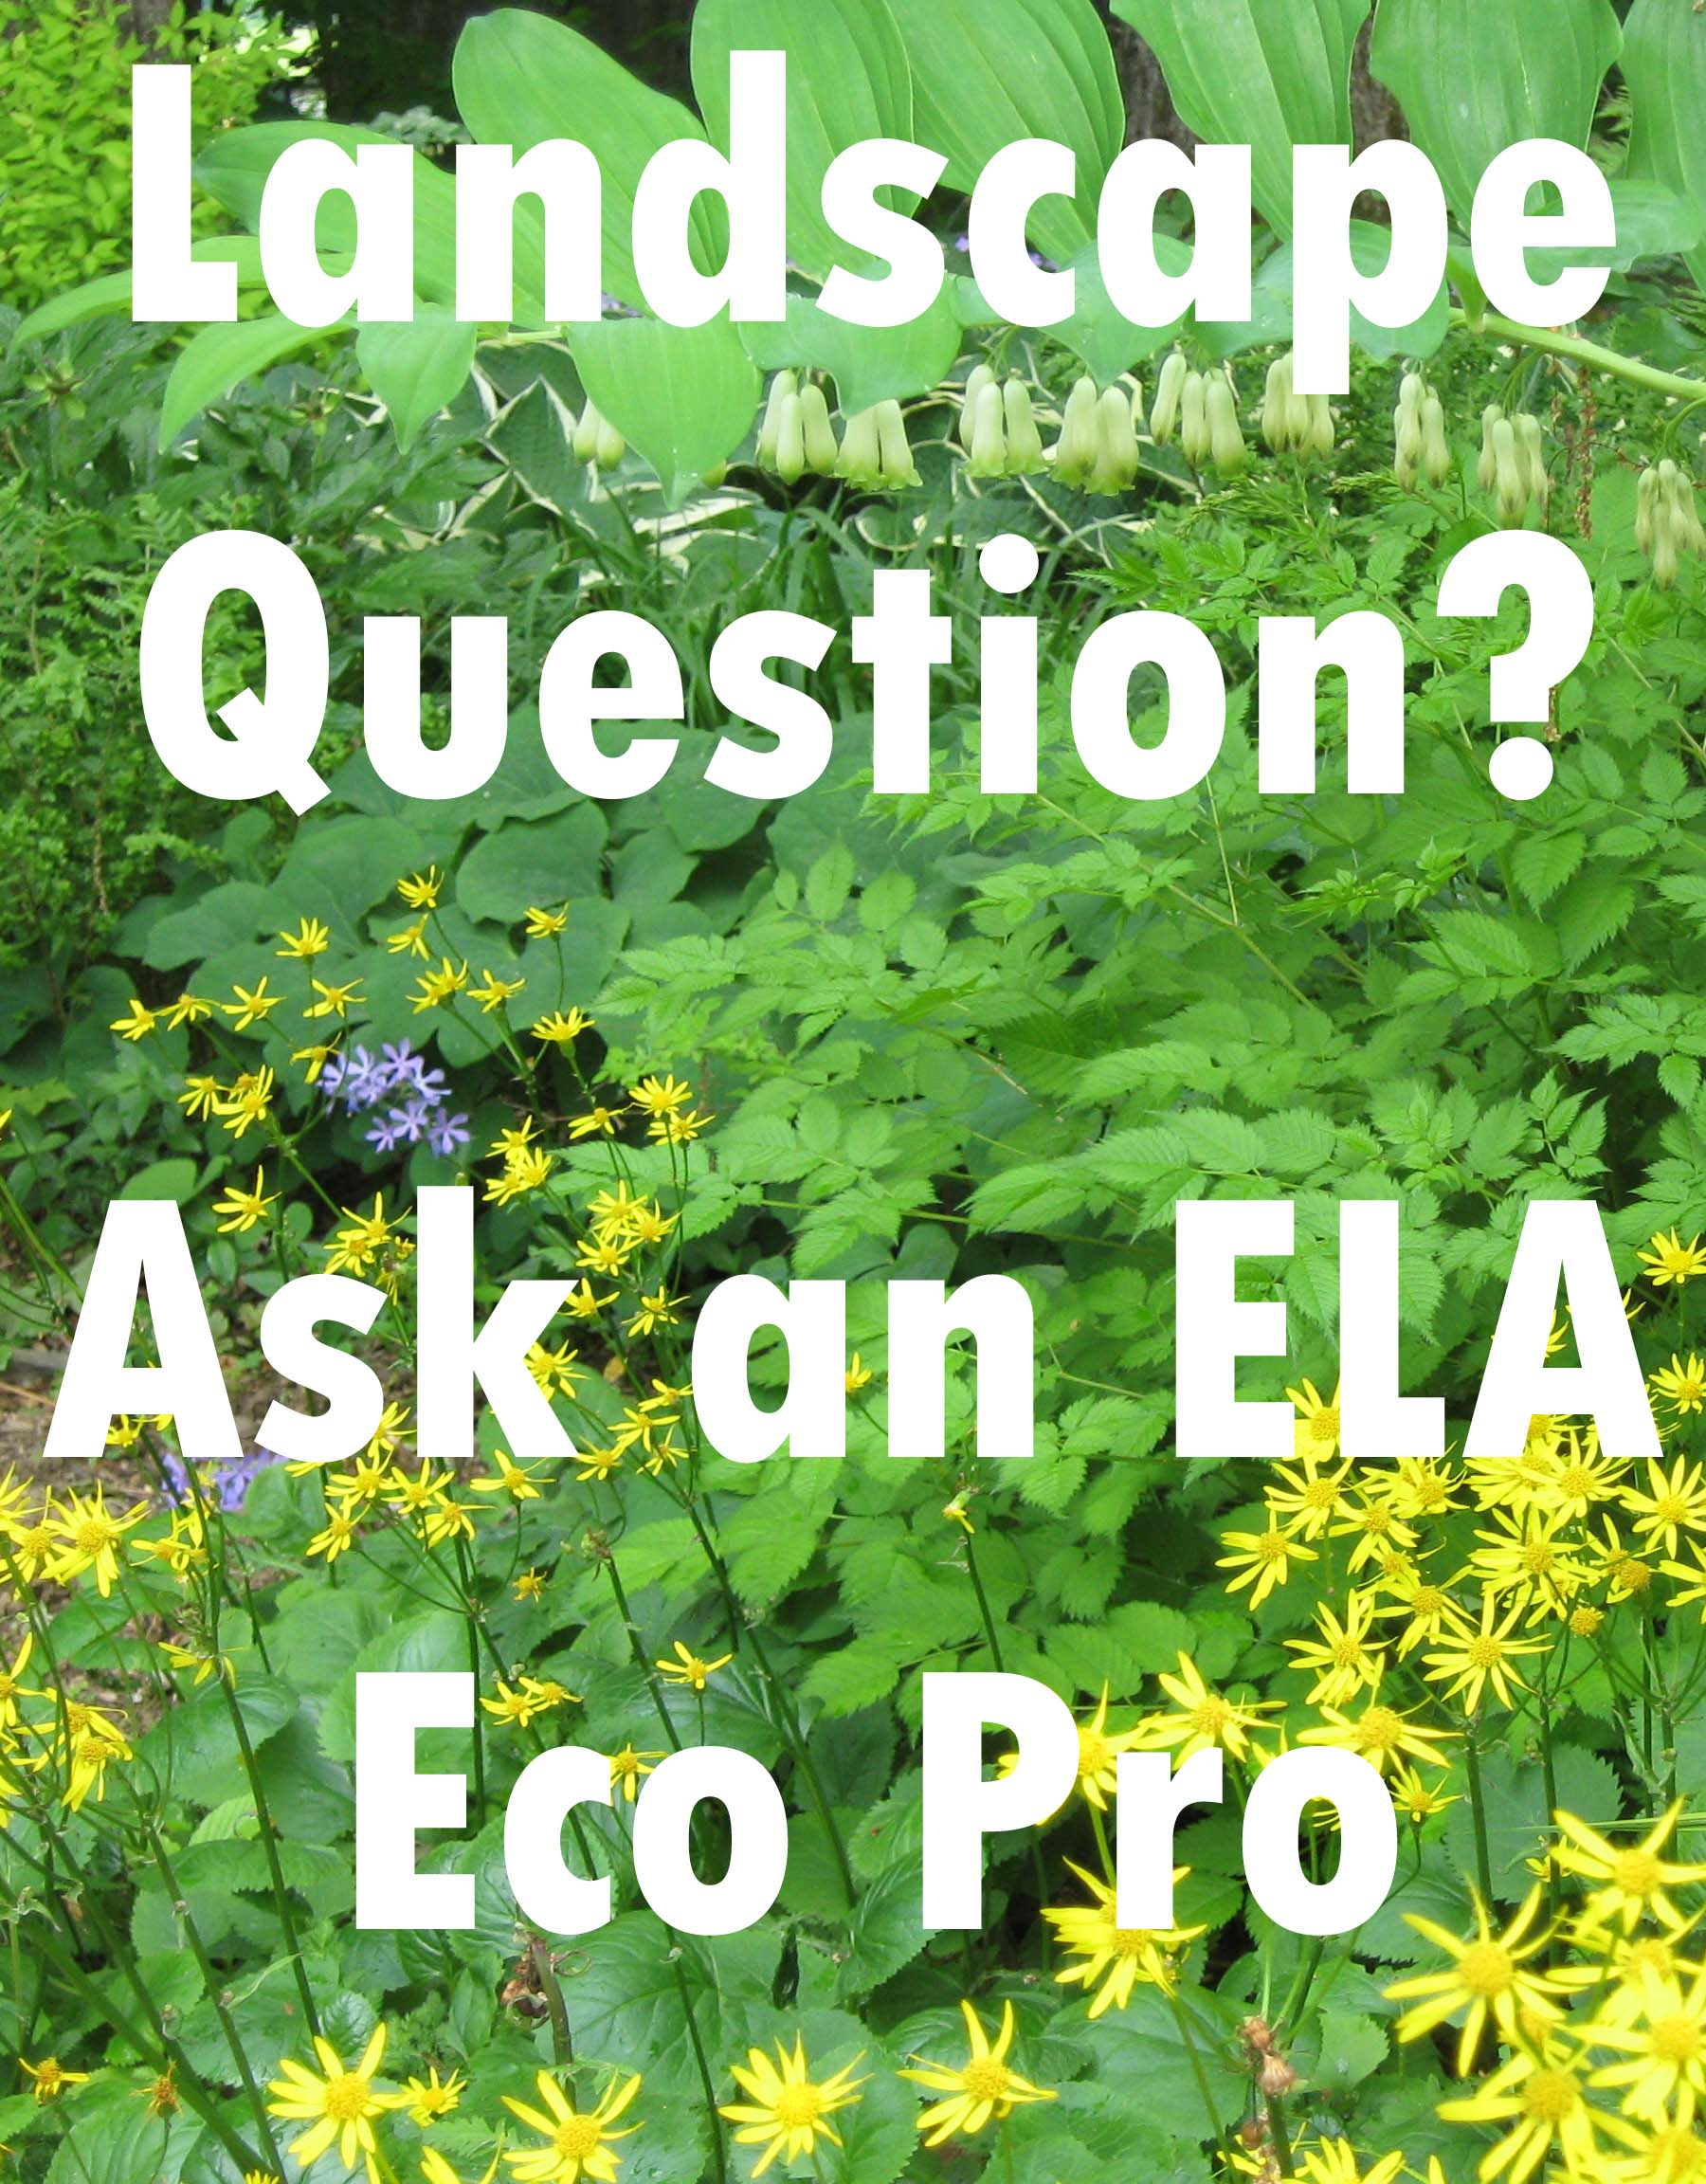 Ask an Eco Pro!